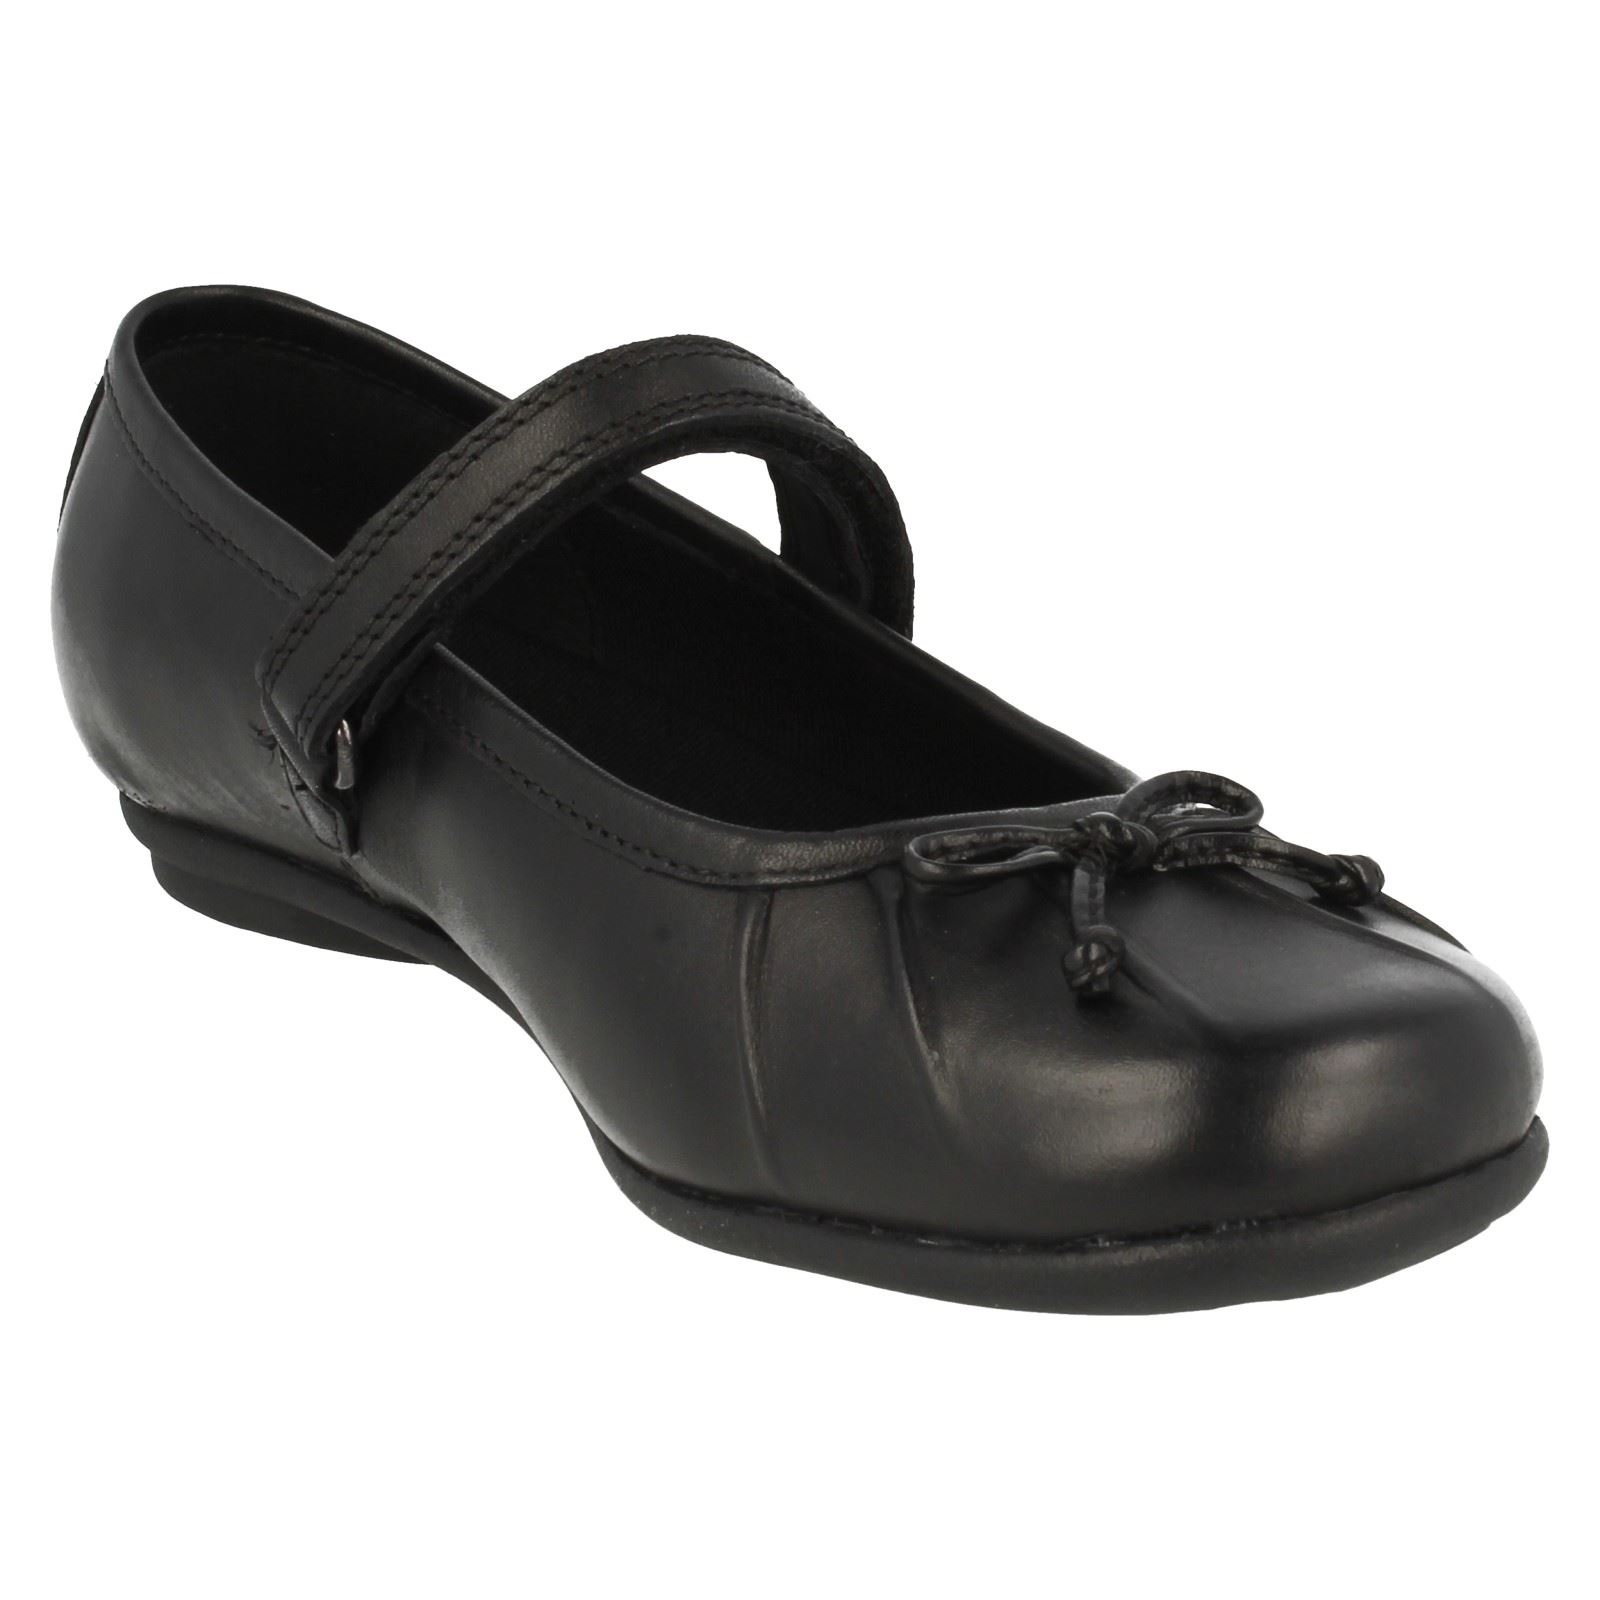 Girls Clarks School Shoes 'Tasha Ally'